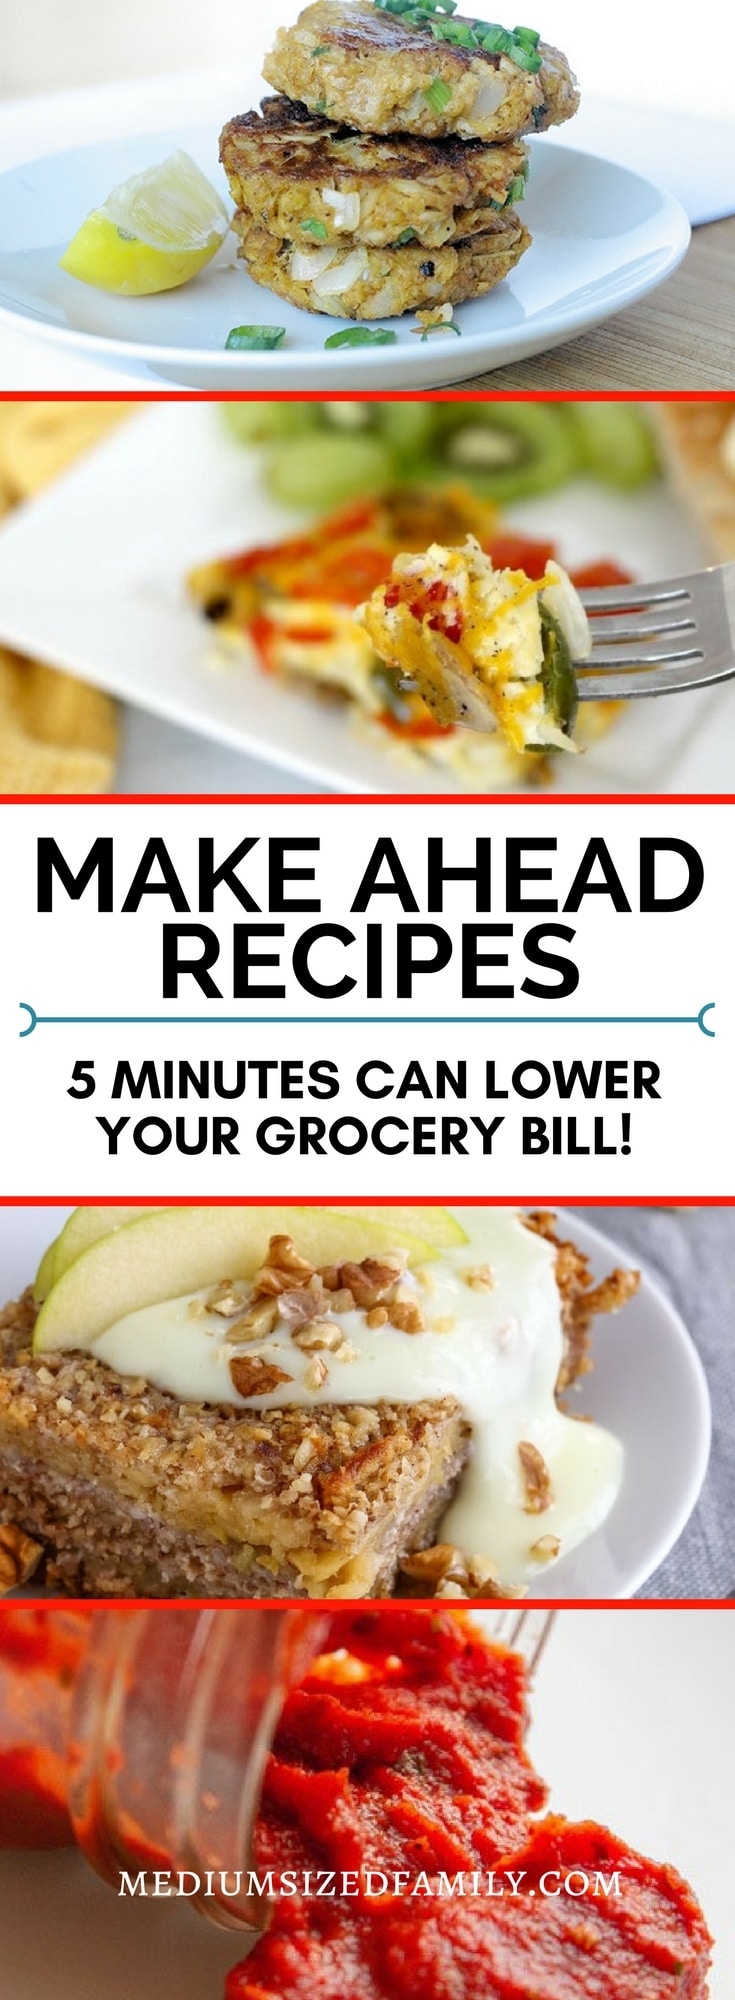 These easy make ahead recipes can help you save money on your grocery bill!